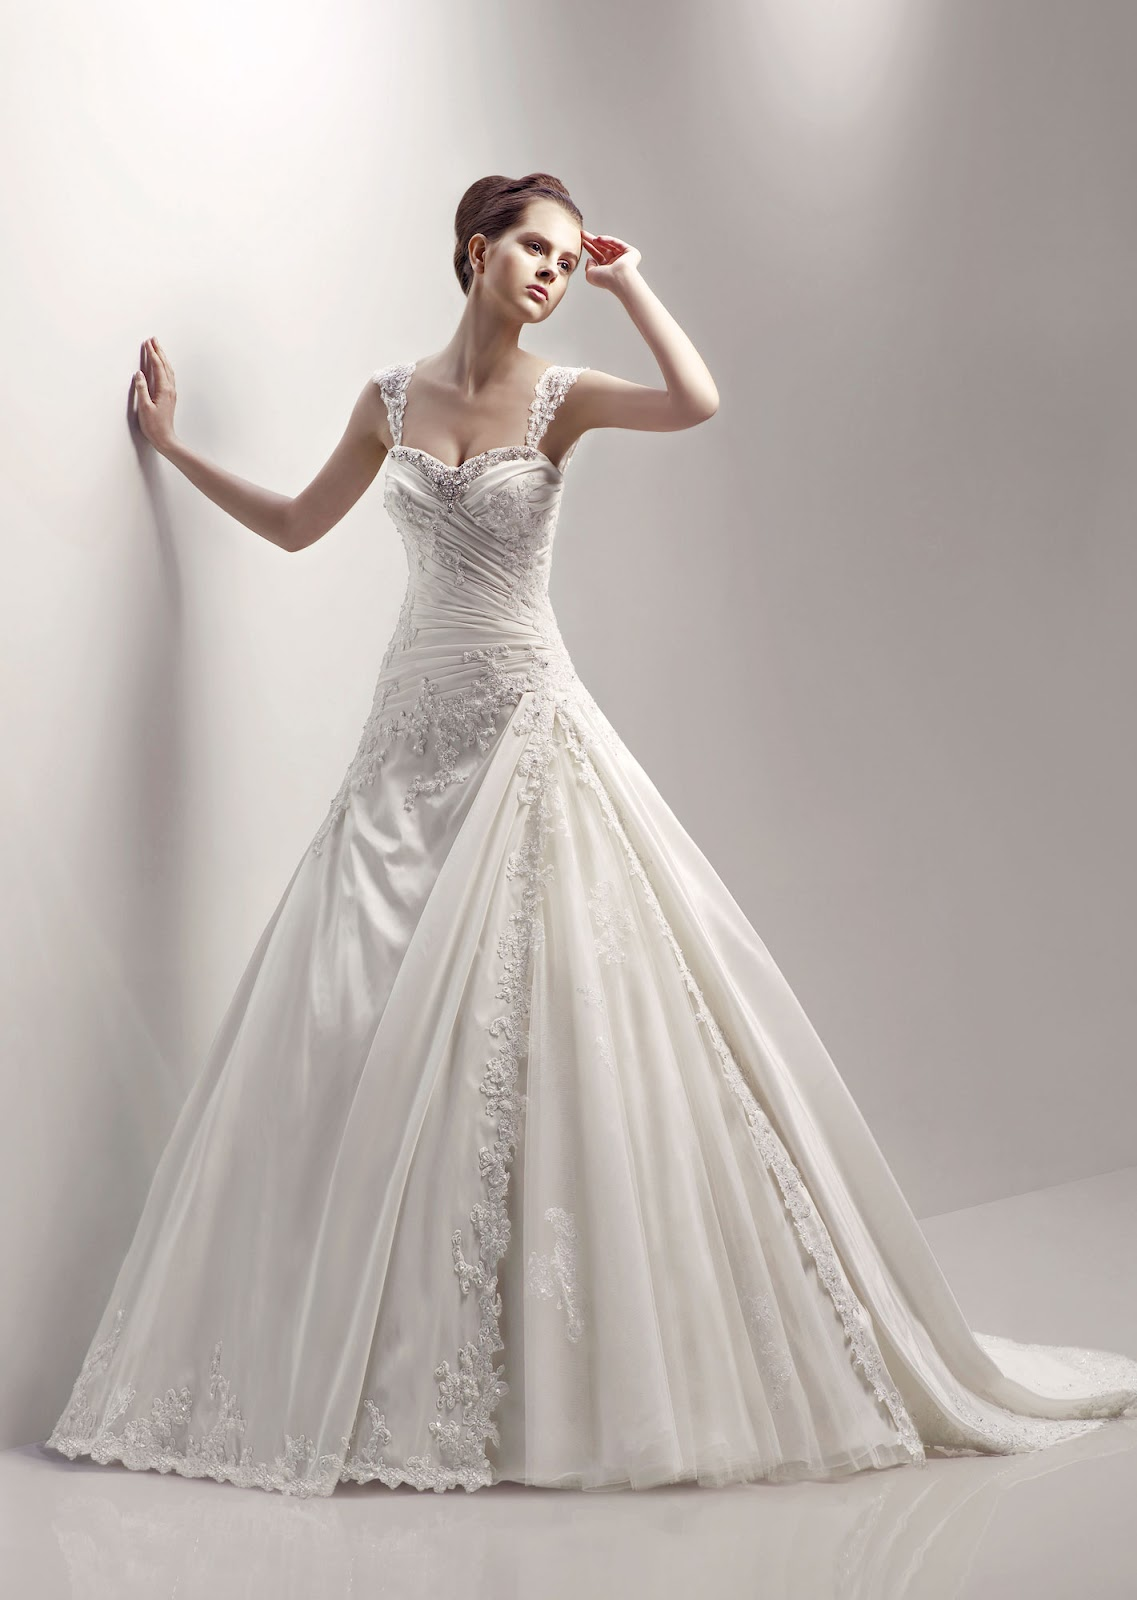 989889d5ab Off-the-Rack Wedding Apparel. Getting one of those wedding dresses ...